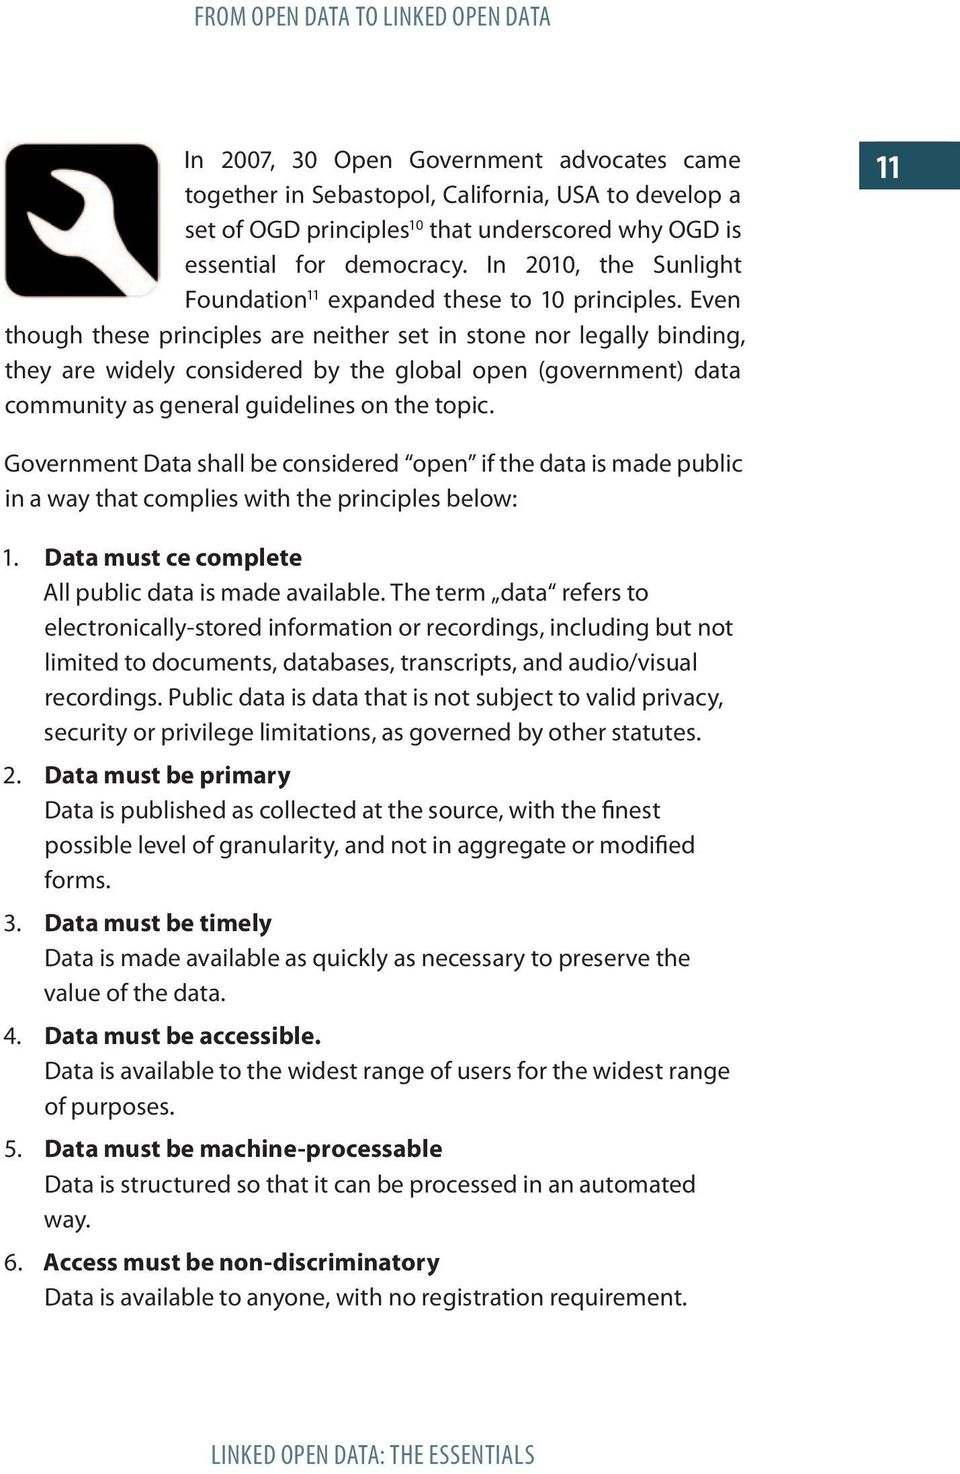 Even though these principles are neither set in stone nor legally binding, they are widely considered by the global open (government) data community as general guidelines on the topic.